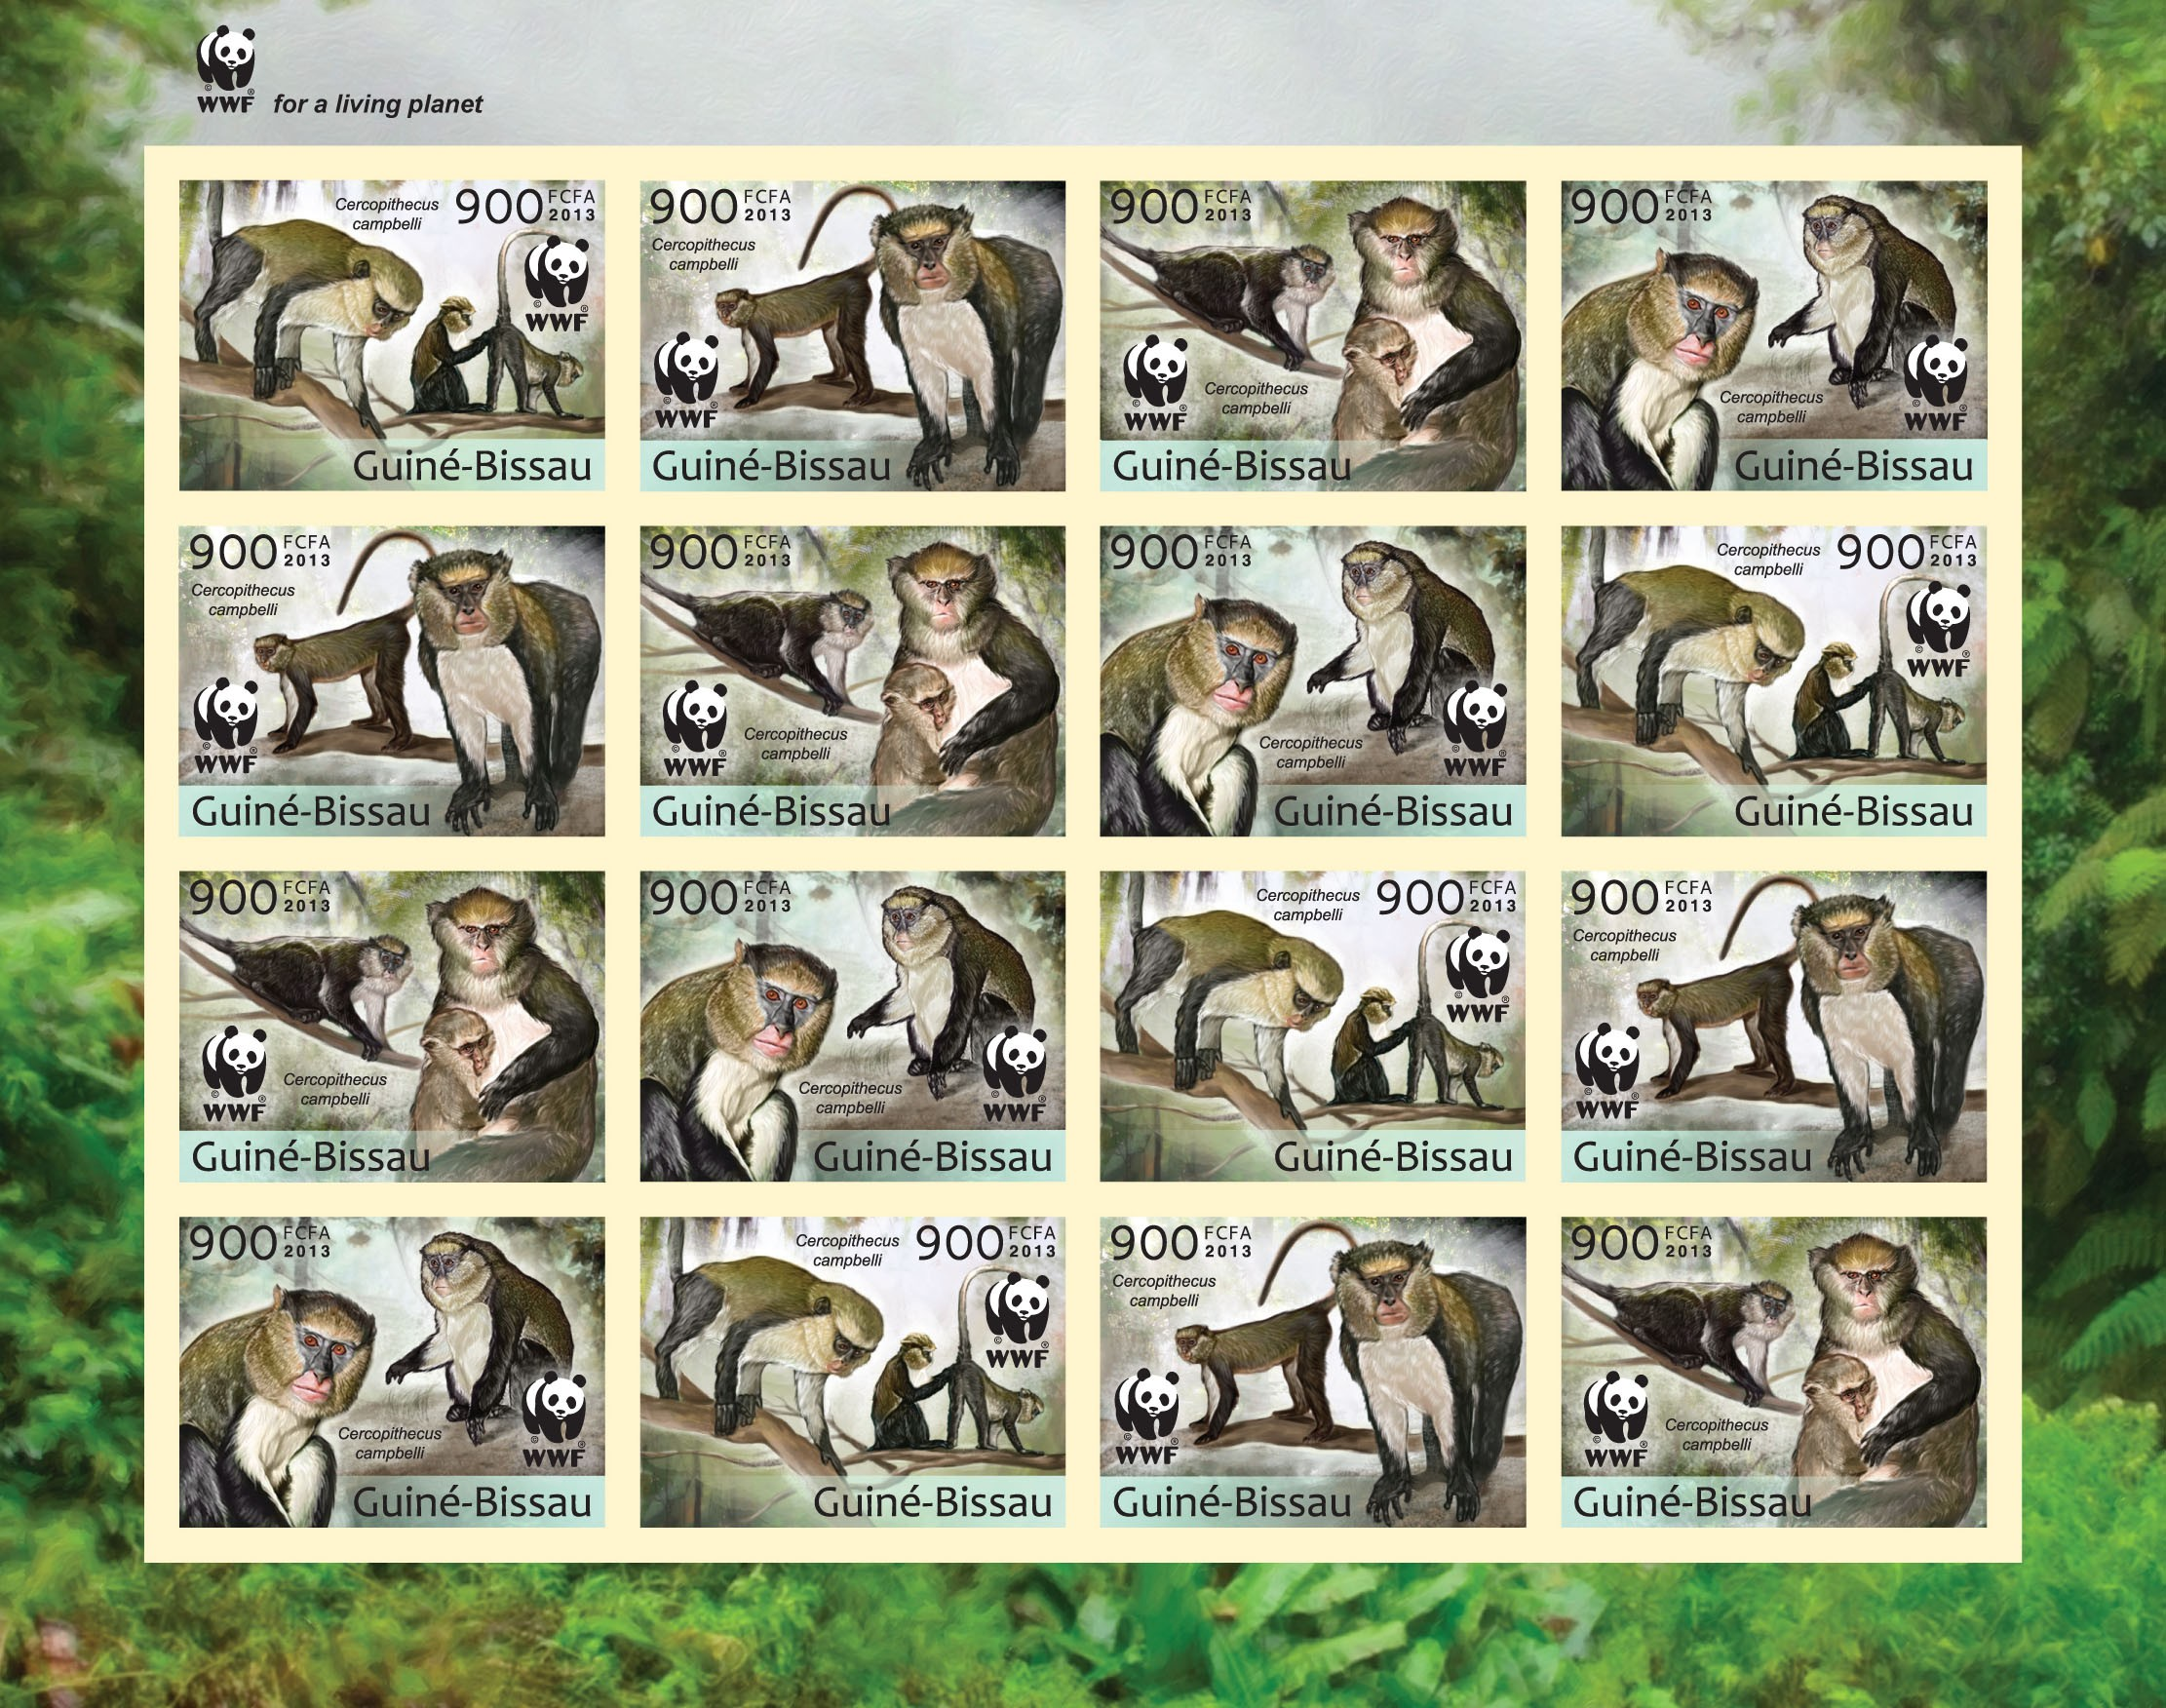 WWF - Monkeys (Cercopithecus campgelli) Sheet of 4 sets - Imperforated - Issue of Guinée-Bissau postage stamps